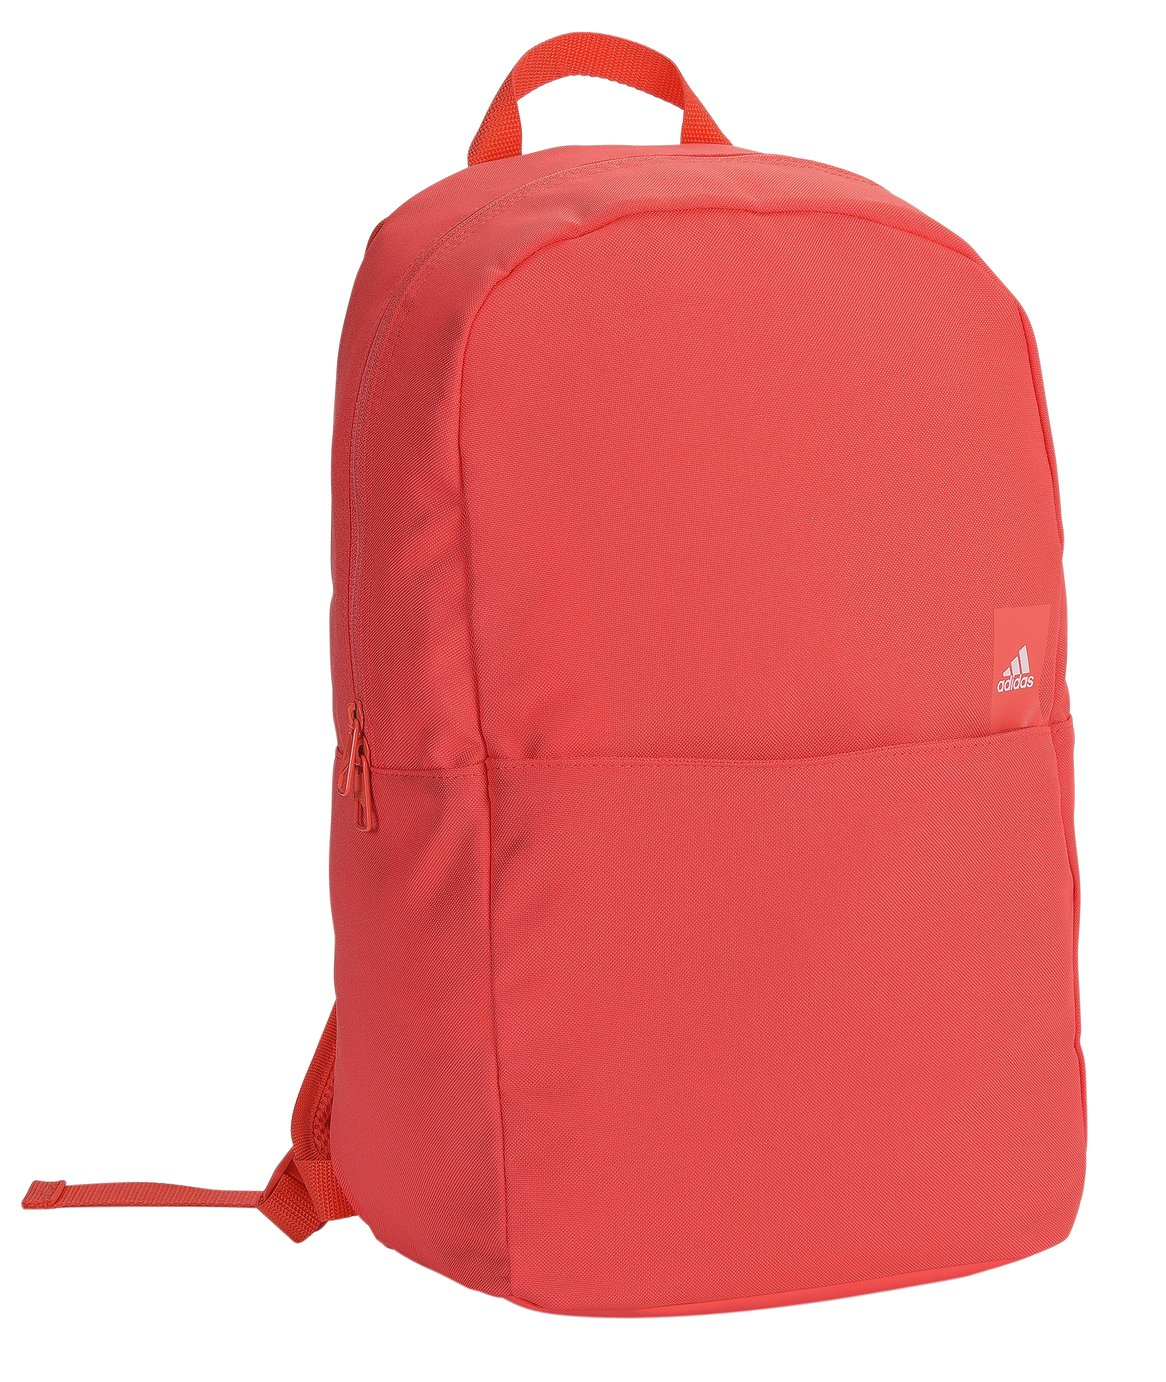 Image of Adidas Classic Medium Backpack - Coral